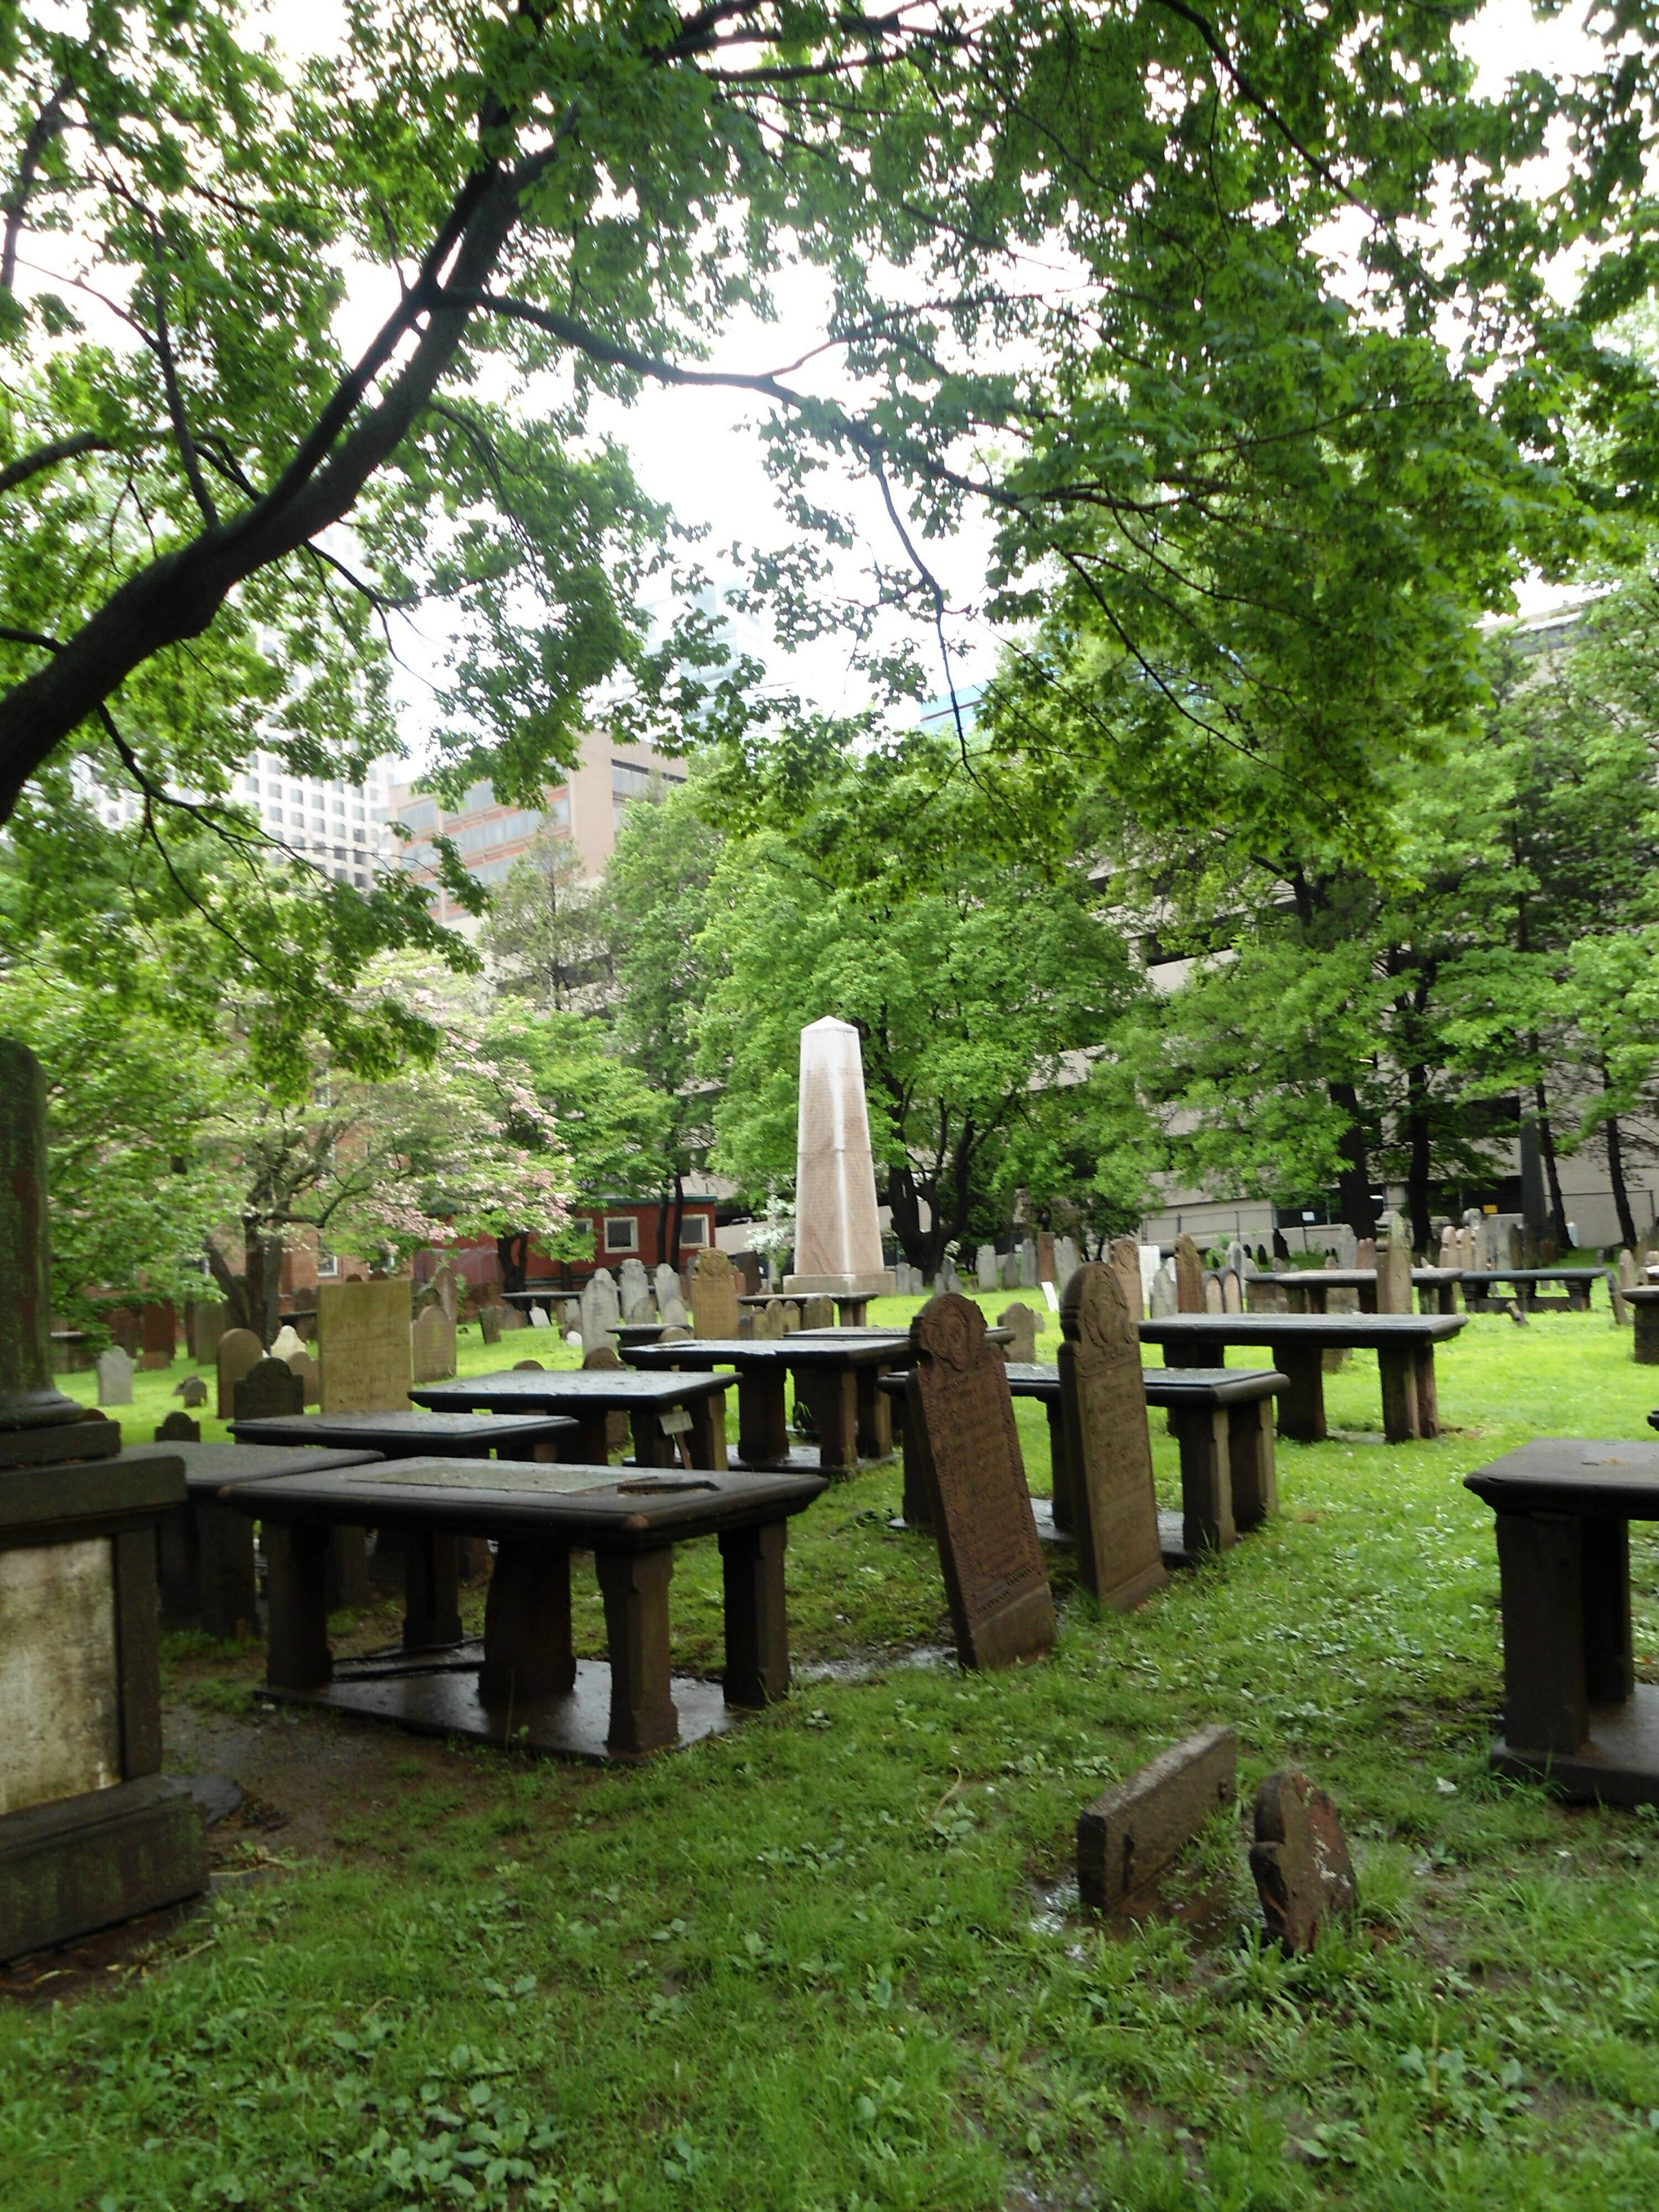 Ancient Burying Ground